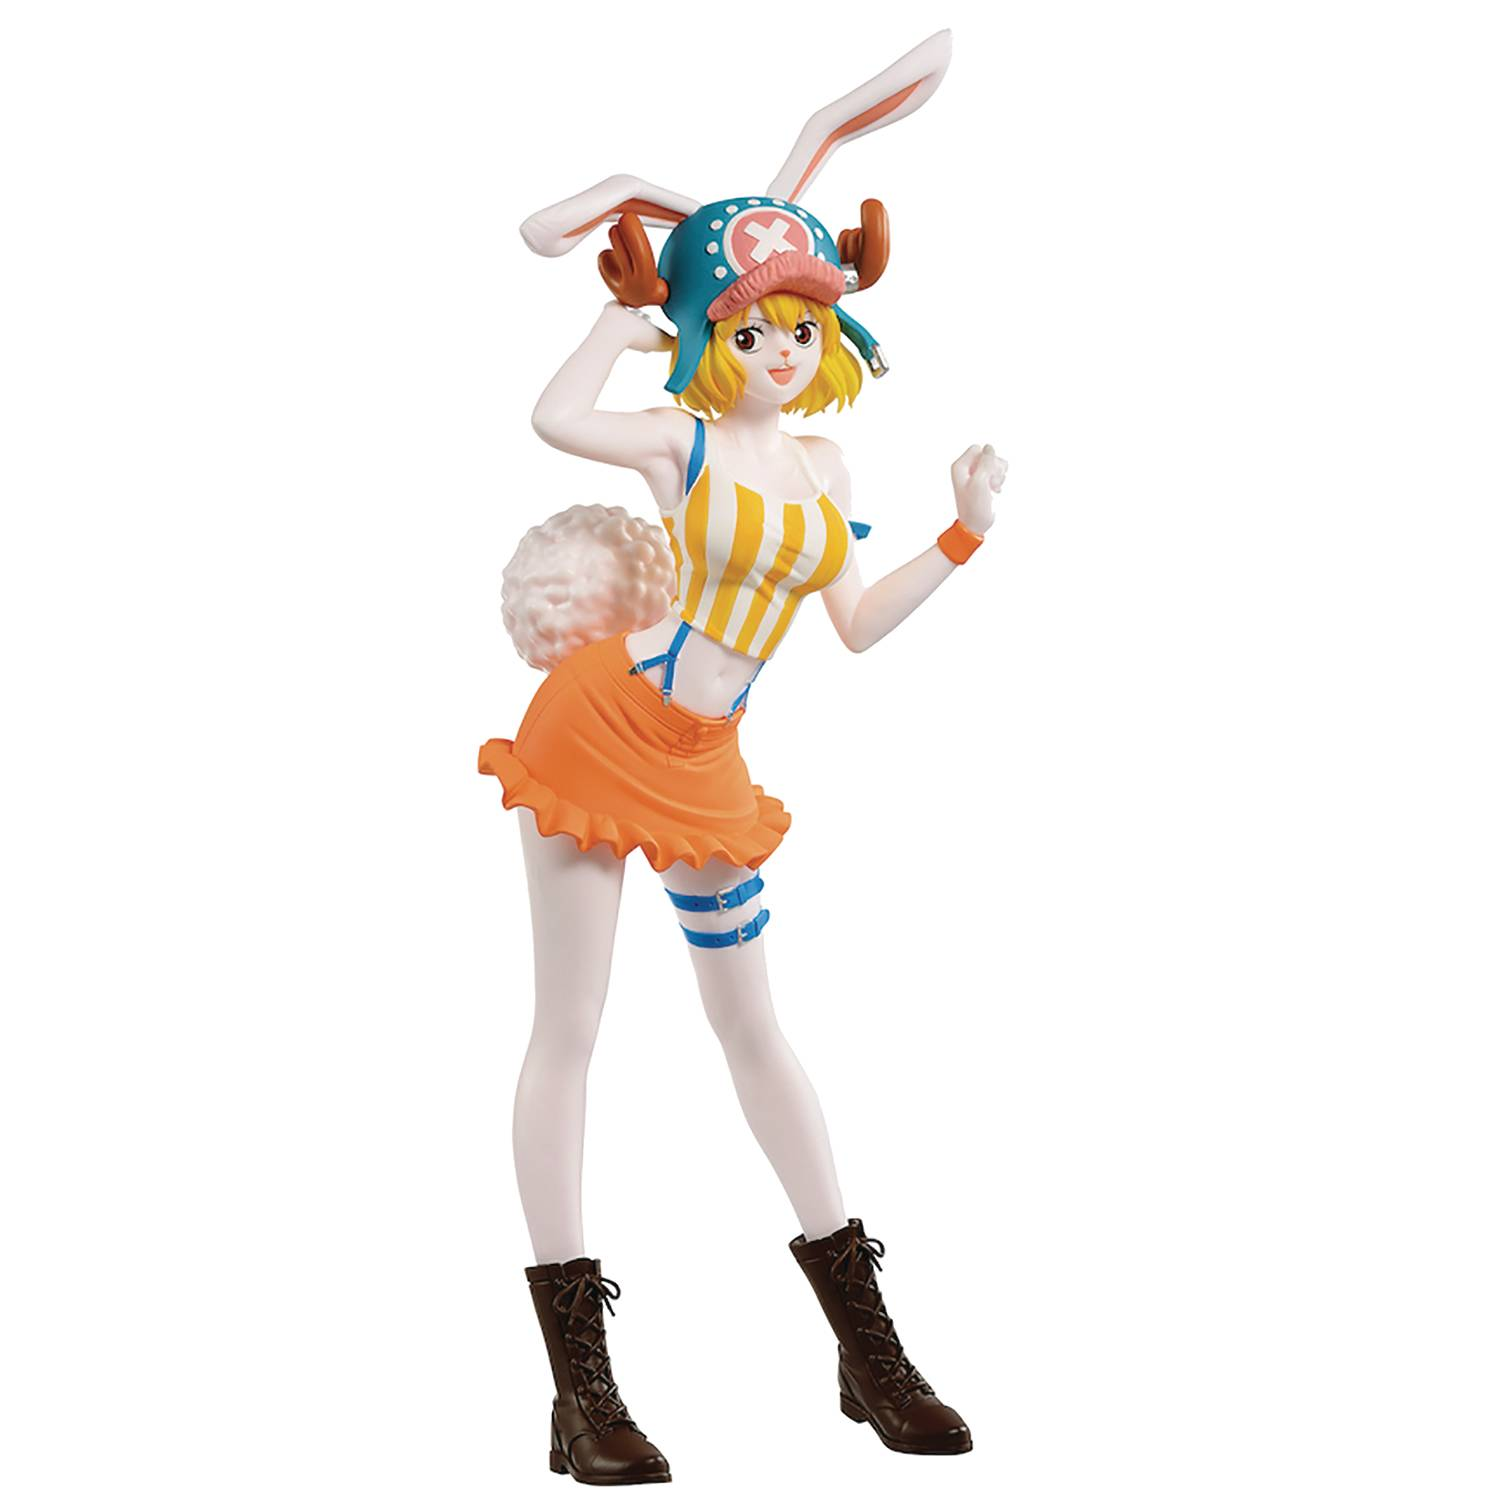 ONE PIECE SWEET STYLE PIRATES CARROT FIG